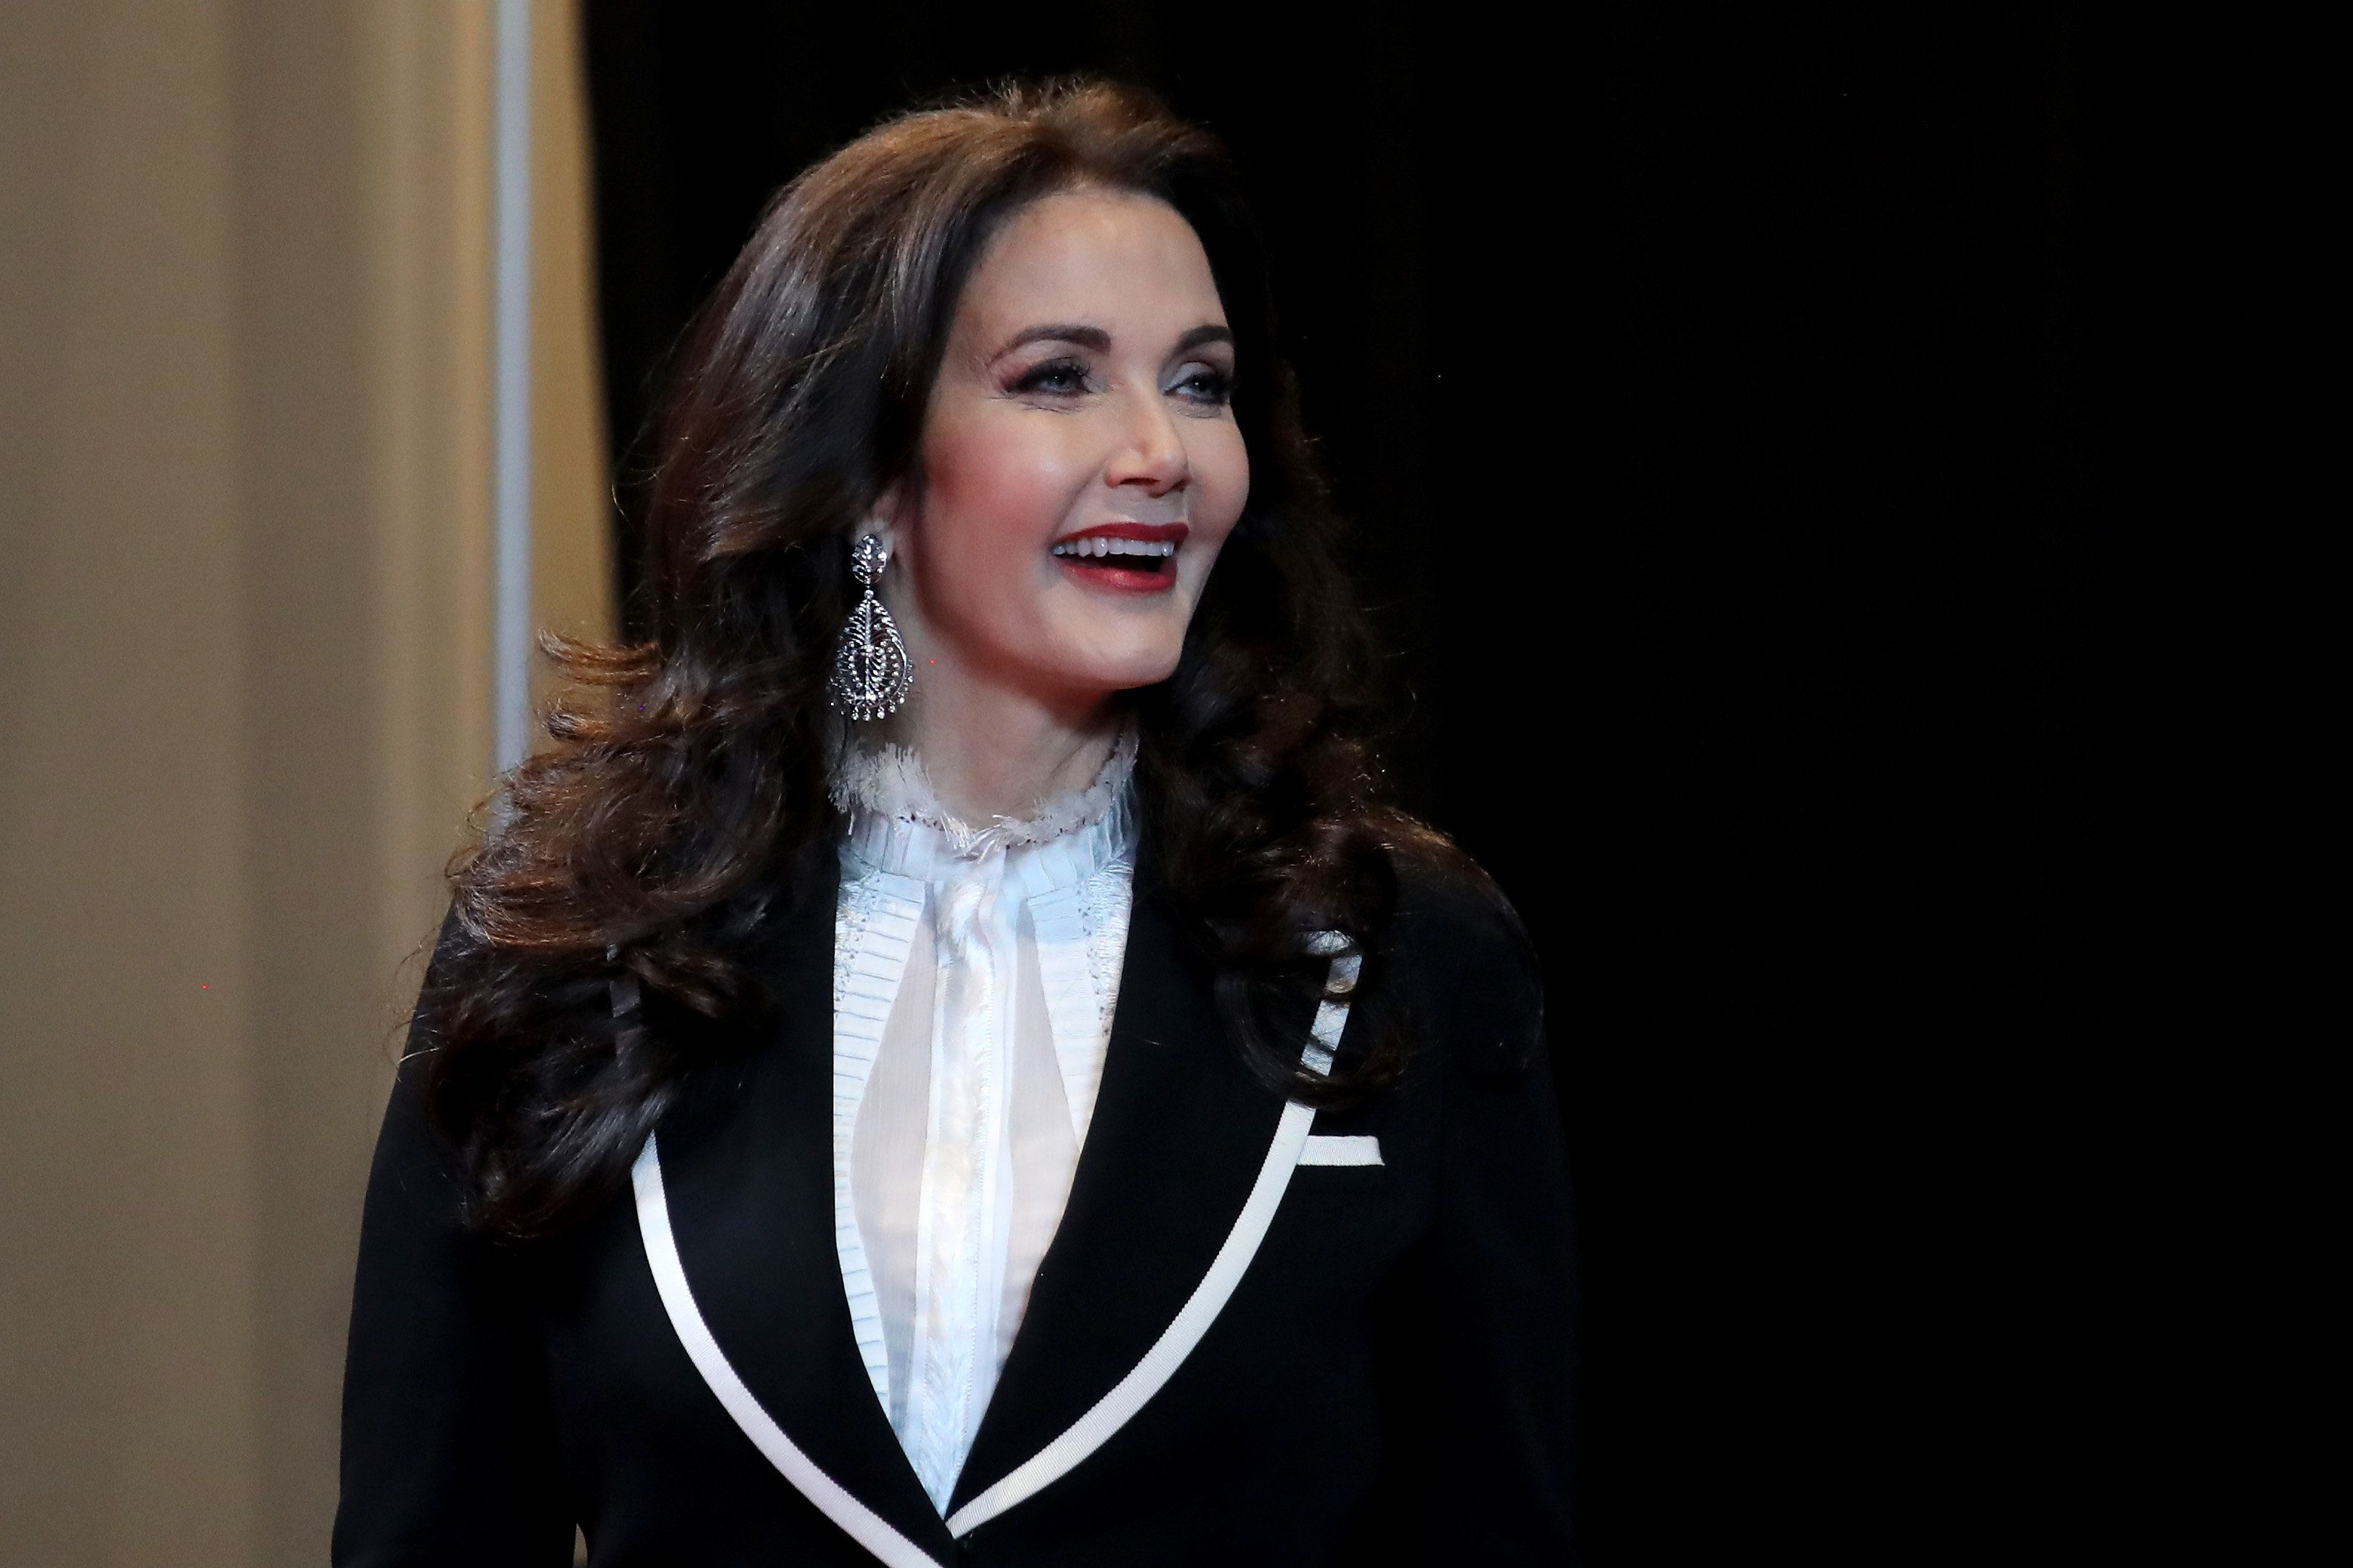 LAS VEGAS, NV - JUNE 20:  Actress Lynda Carter arrives at the 2018 NHL Awards presented by Hulu at the Hard Rock Hotel & Casino on June 20, 2018 in Las Vegas, Nevada.  (Photo by Bruce Bennett/Getty Images)